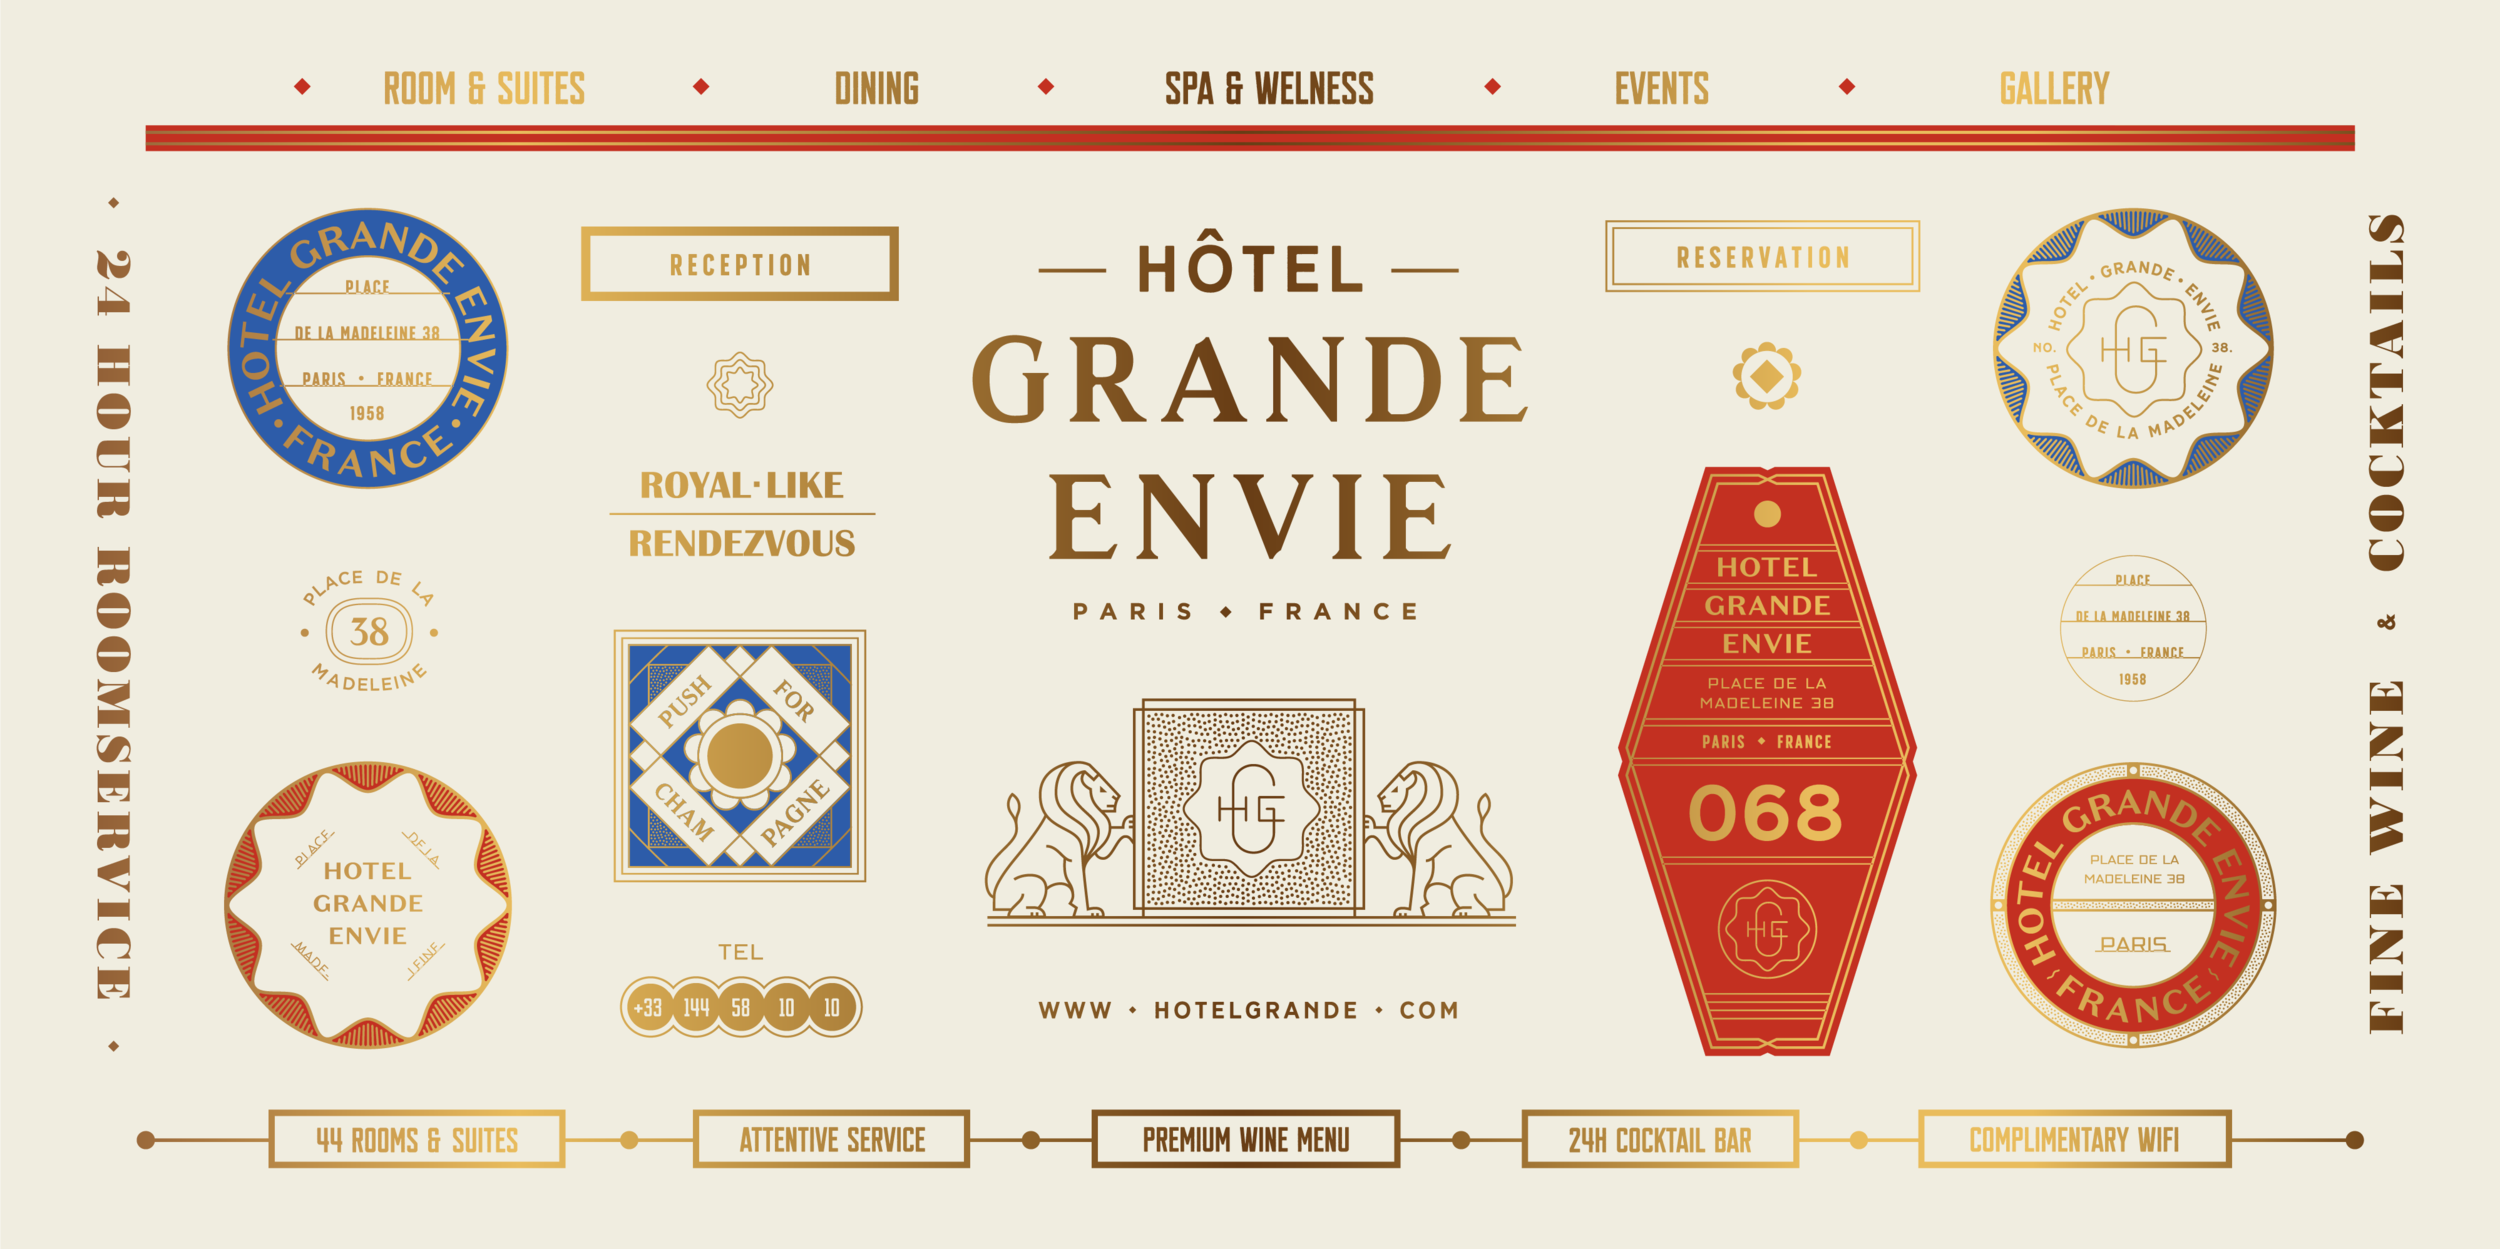 Branding for a Fictional French Hotel Called Hotel Grande Envie